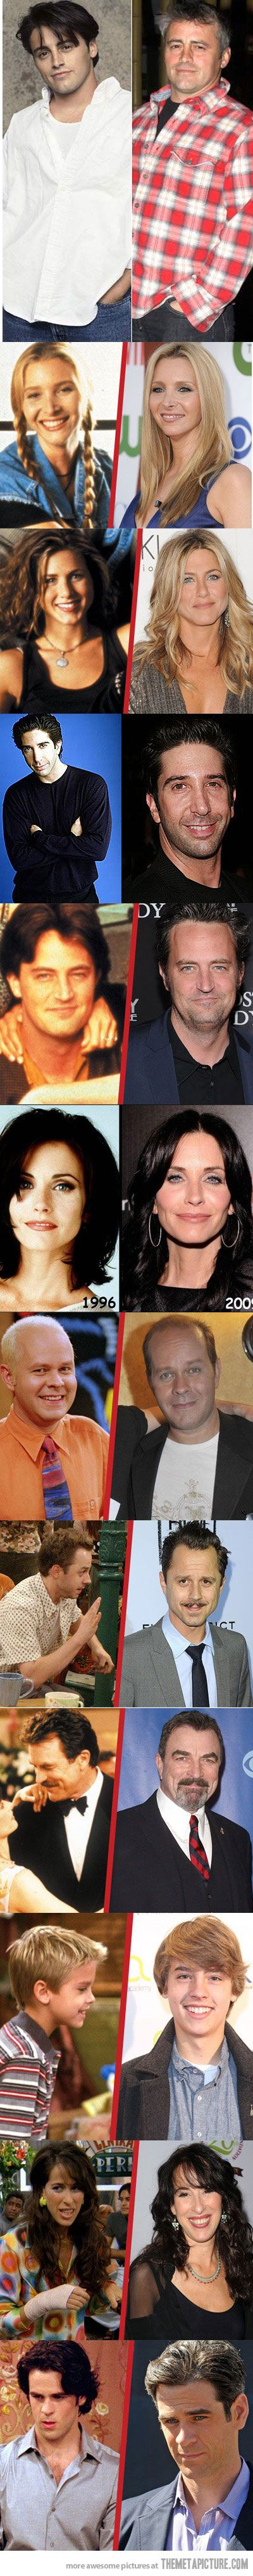 The Cast of Friends: Then and now WOW! Most of them actually still look pretty damn good, I'd say!